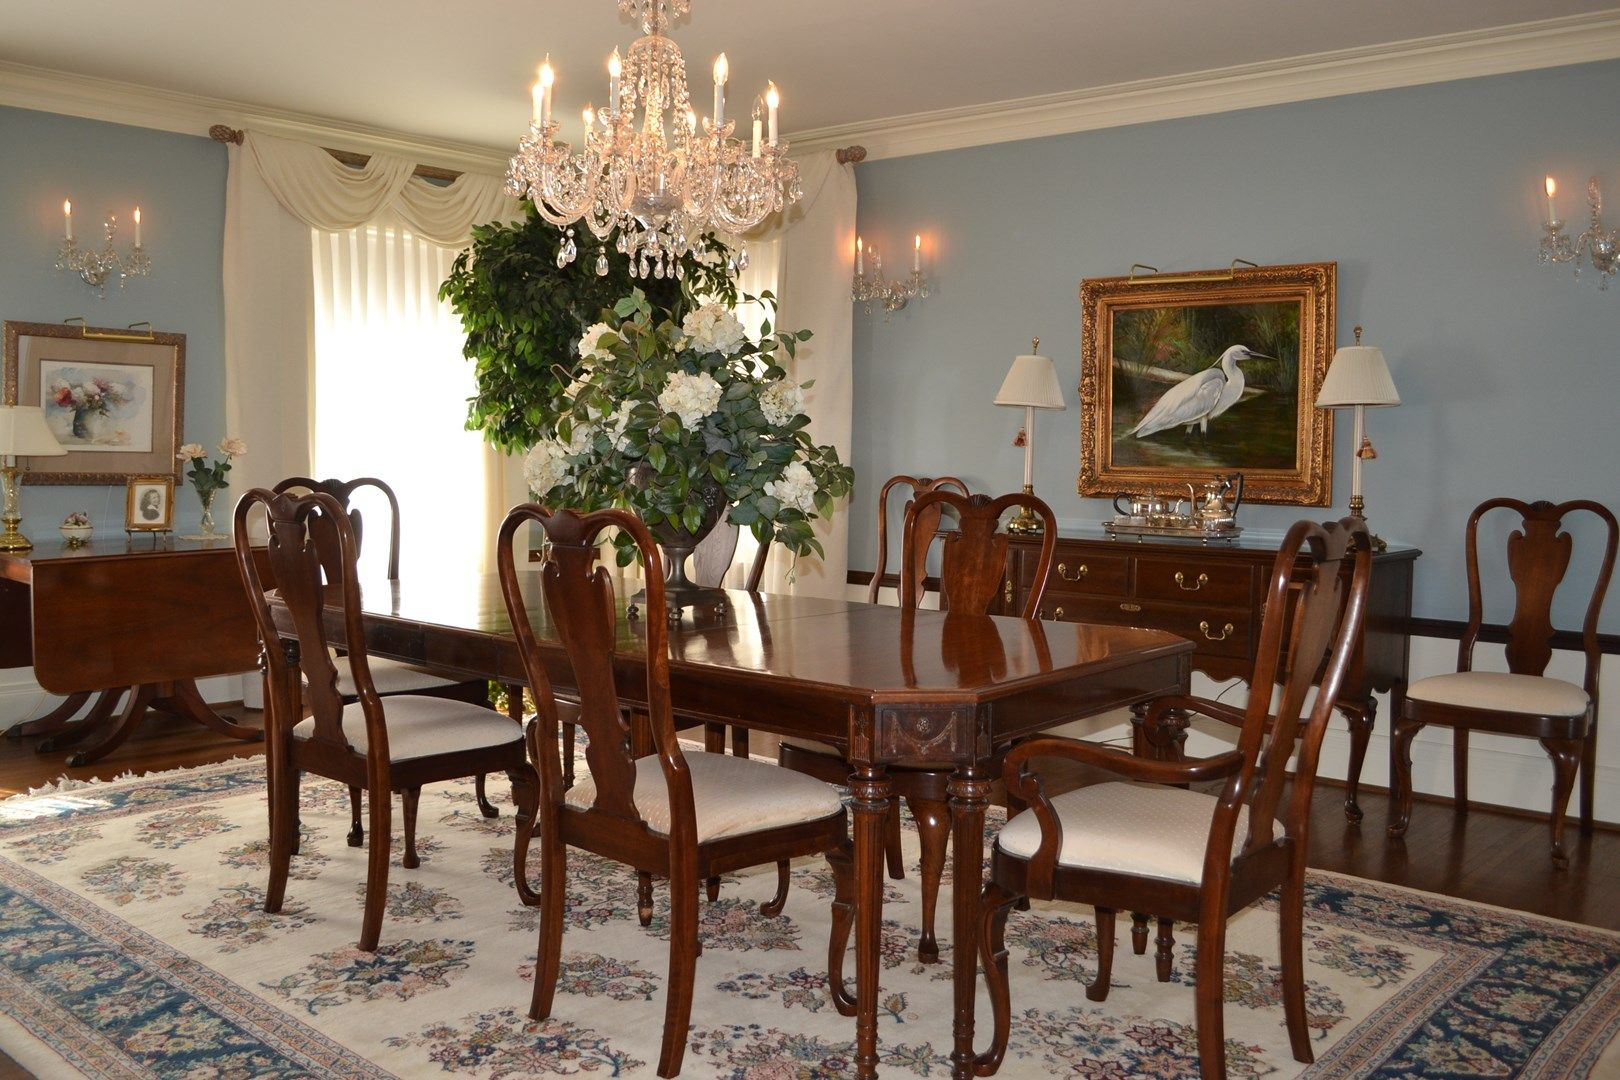 The key to a formal dining room? Just add a gorgeous chandelier!